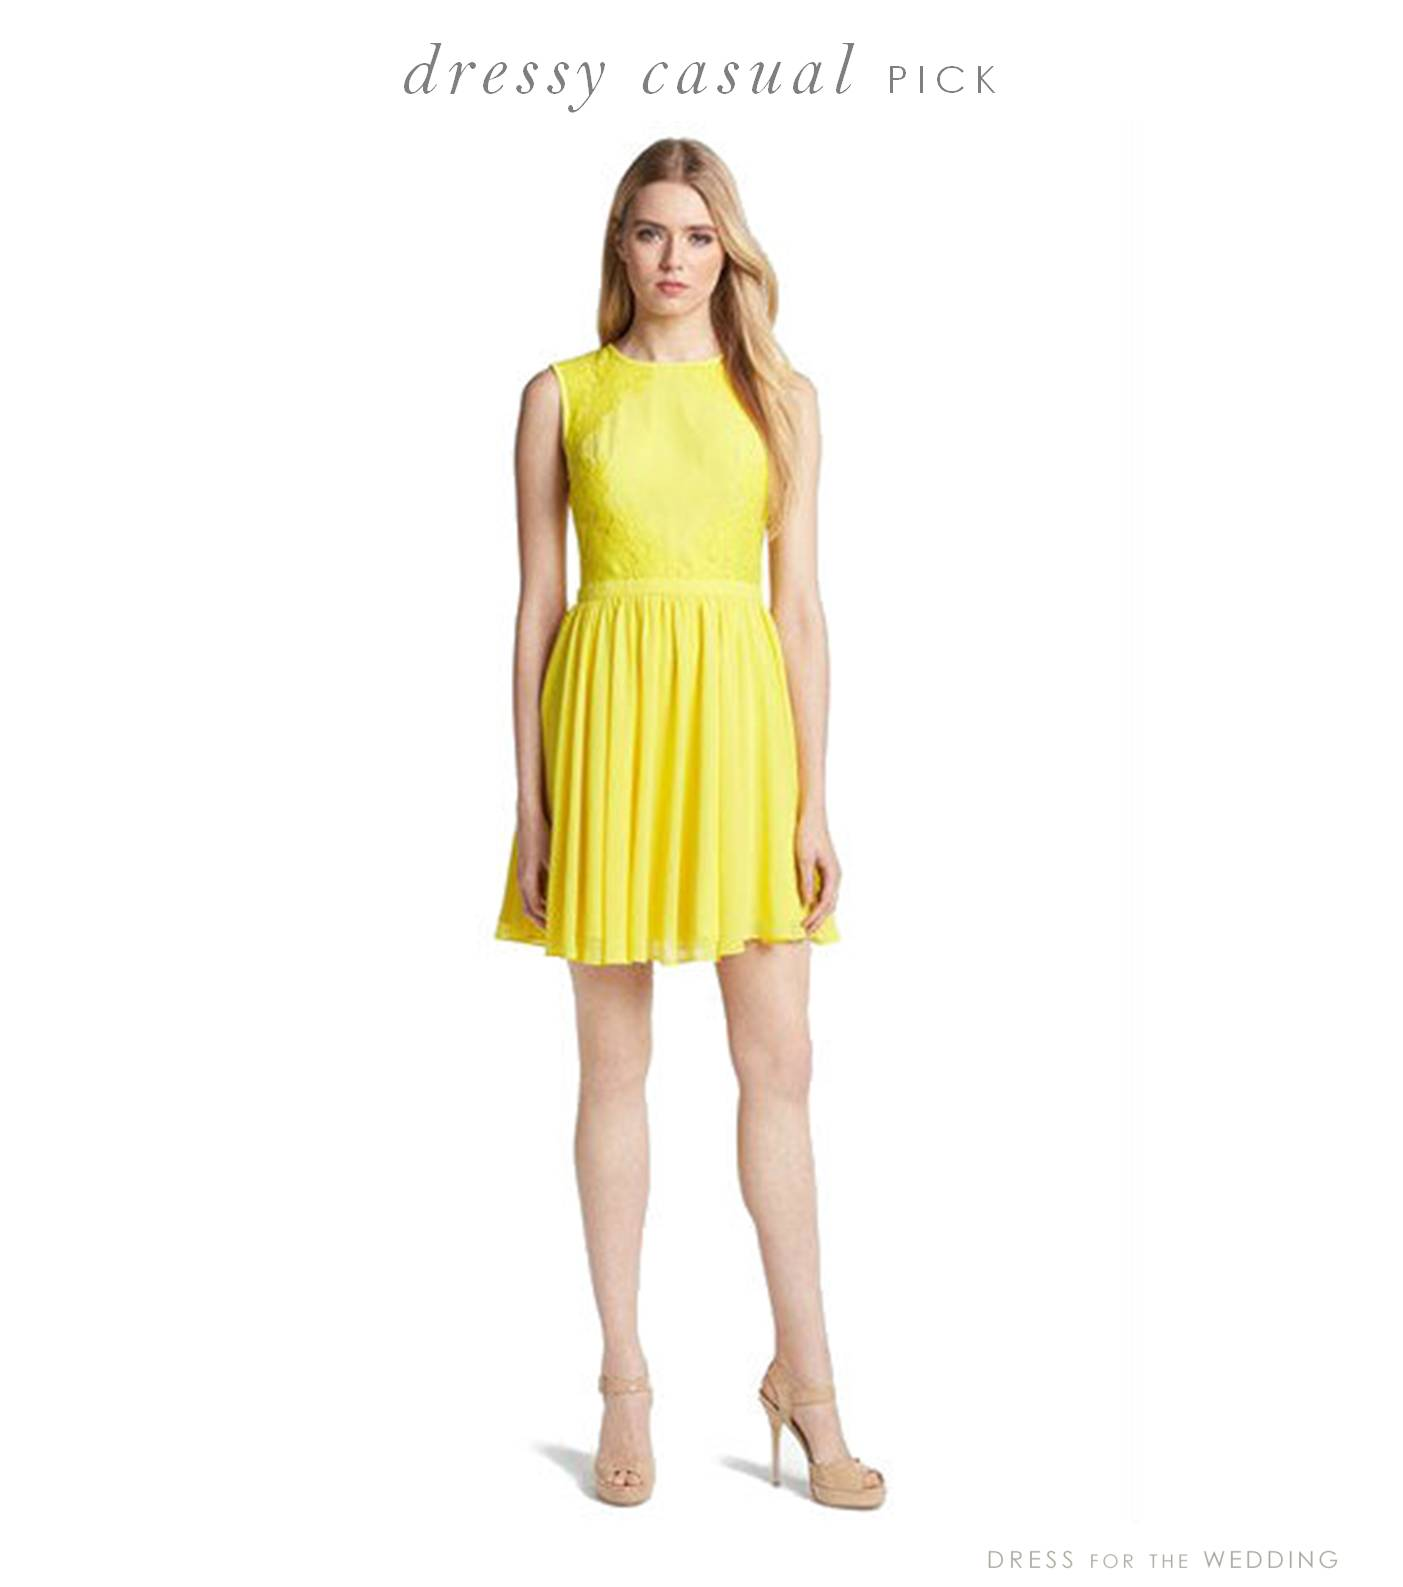 Yellow Dressy Casual Dress